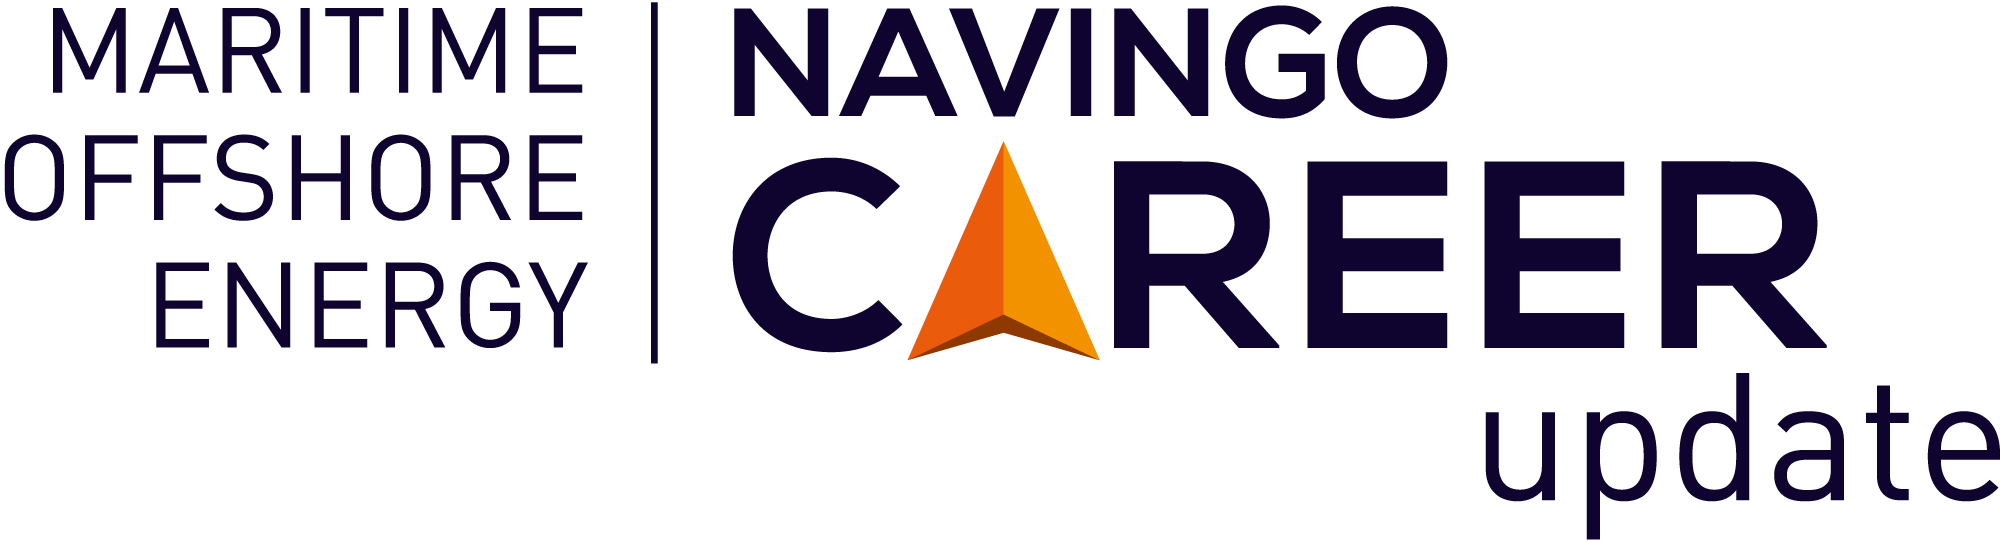 Navingo Career Update